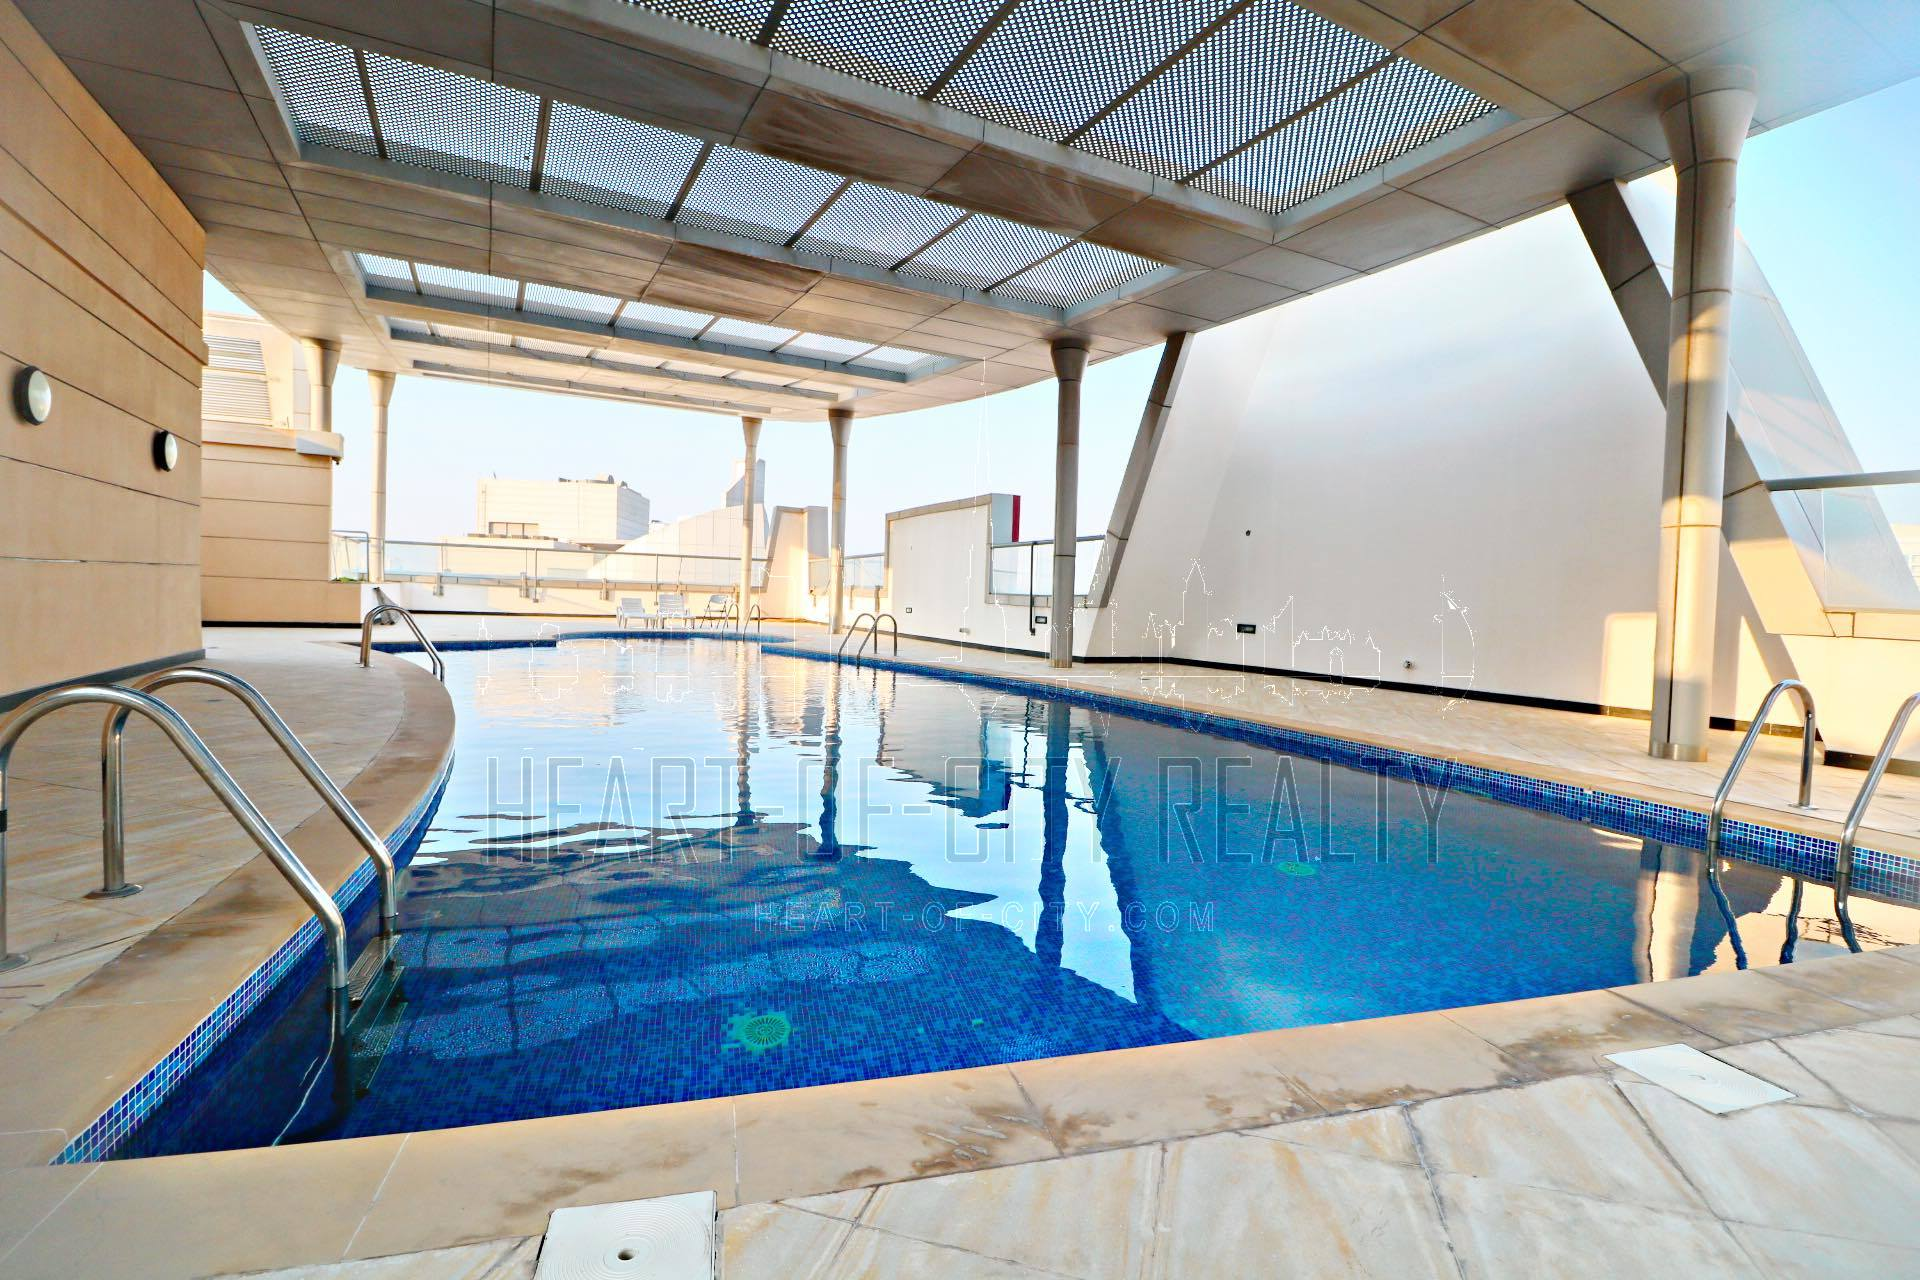 Pool in Hub Canal 2 at Dubai sports city